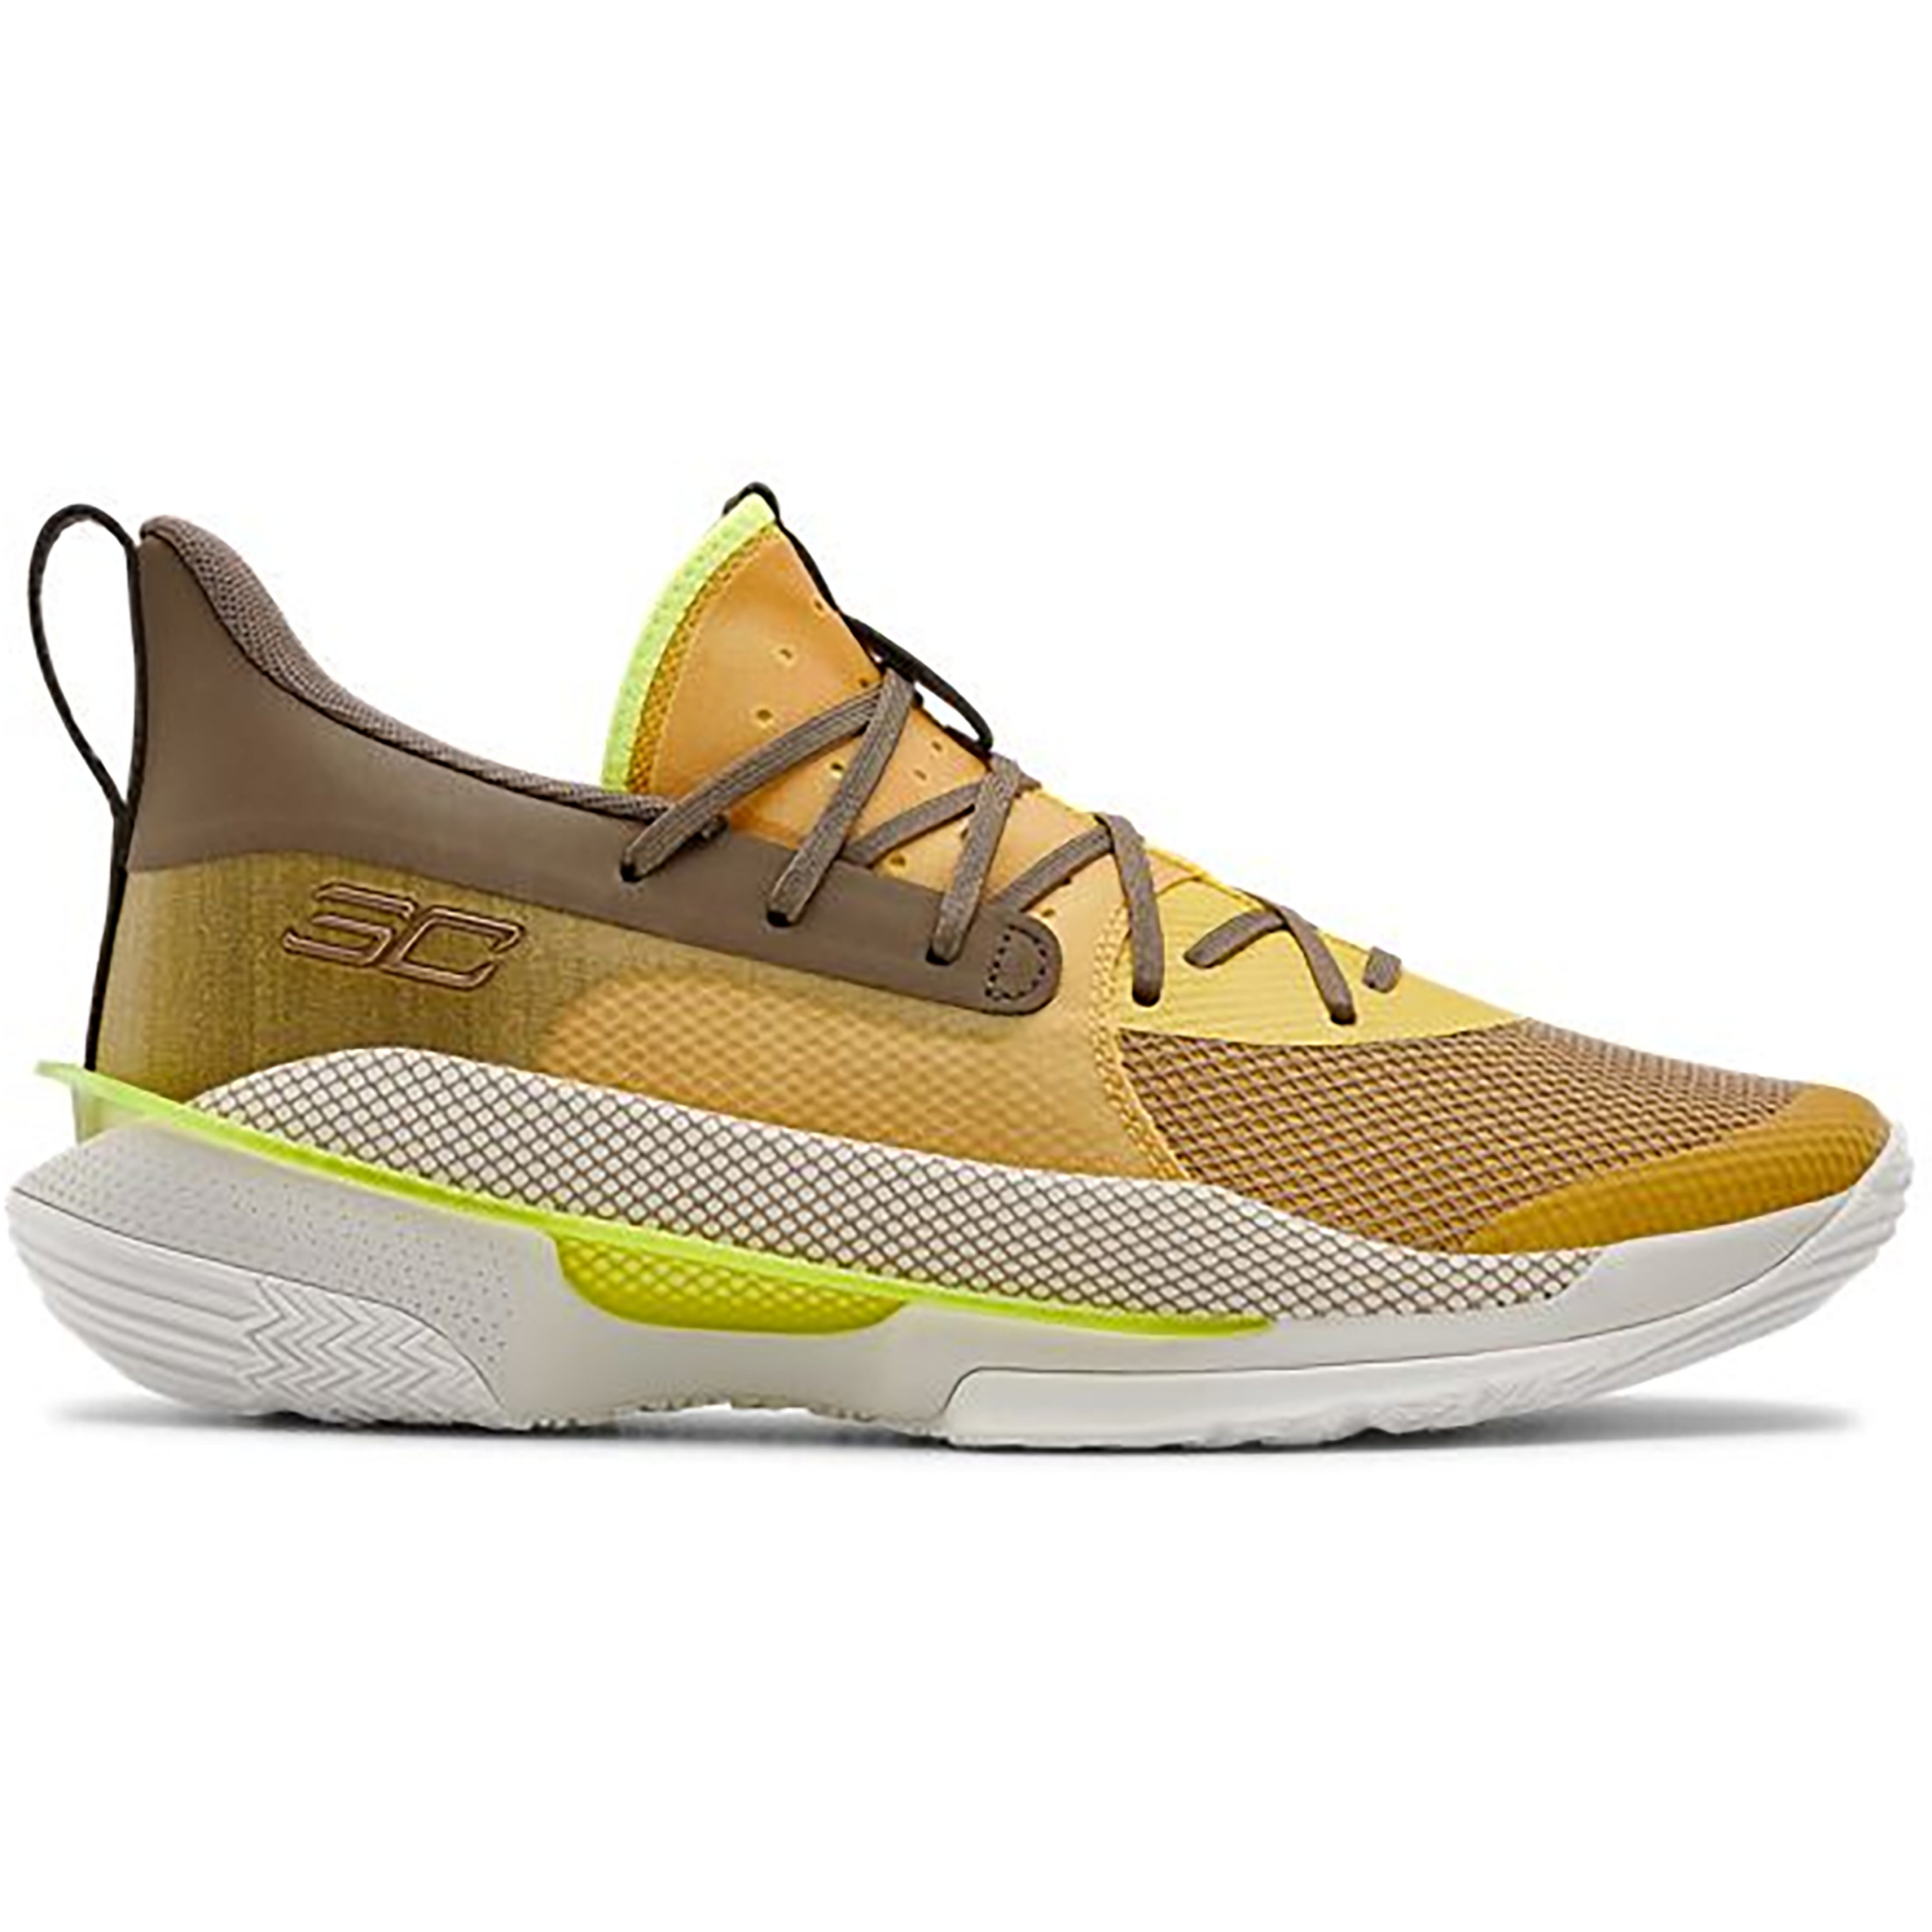 Under Armour Curry 7 Zeppelin Yellow (3021258-701)